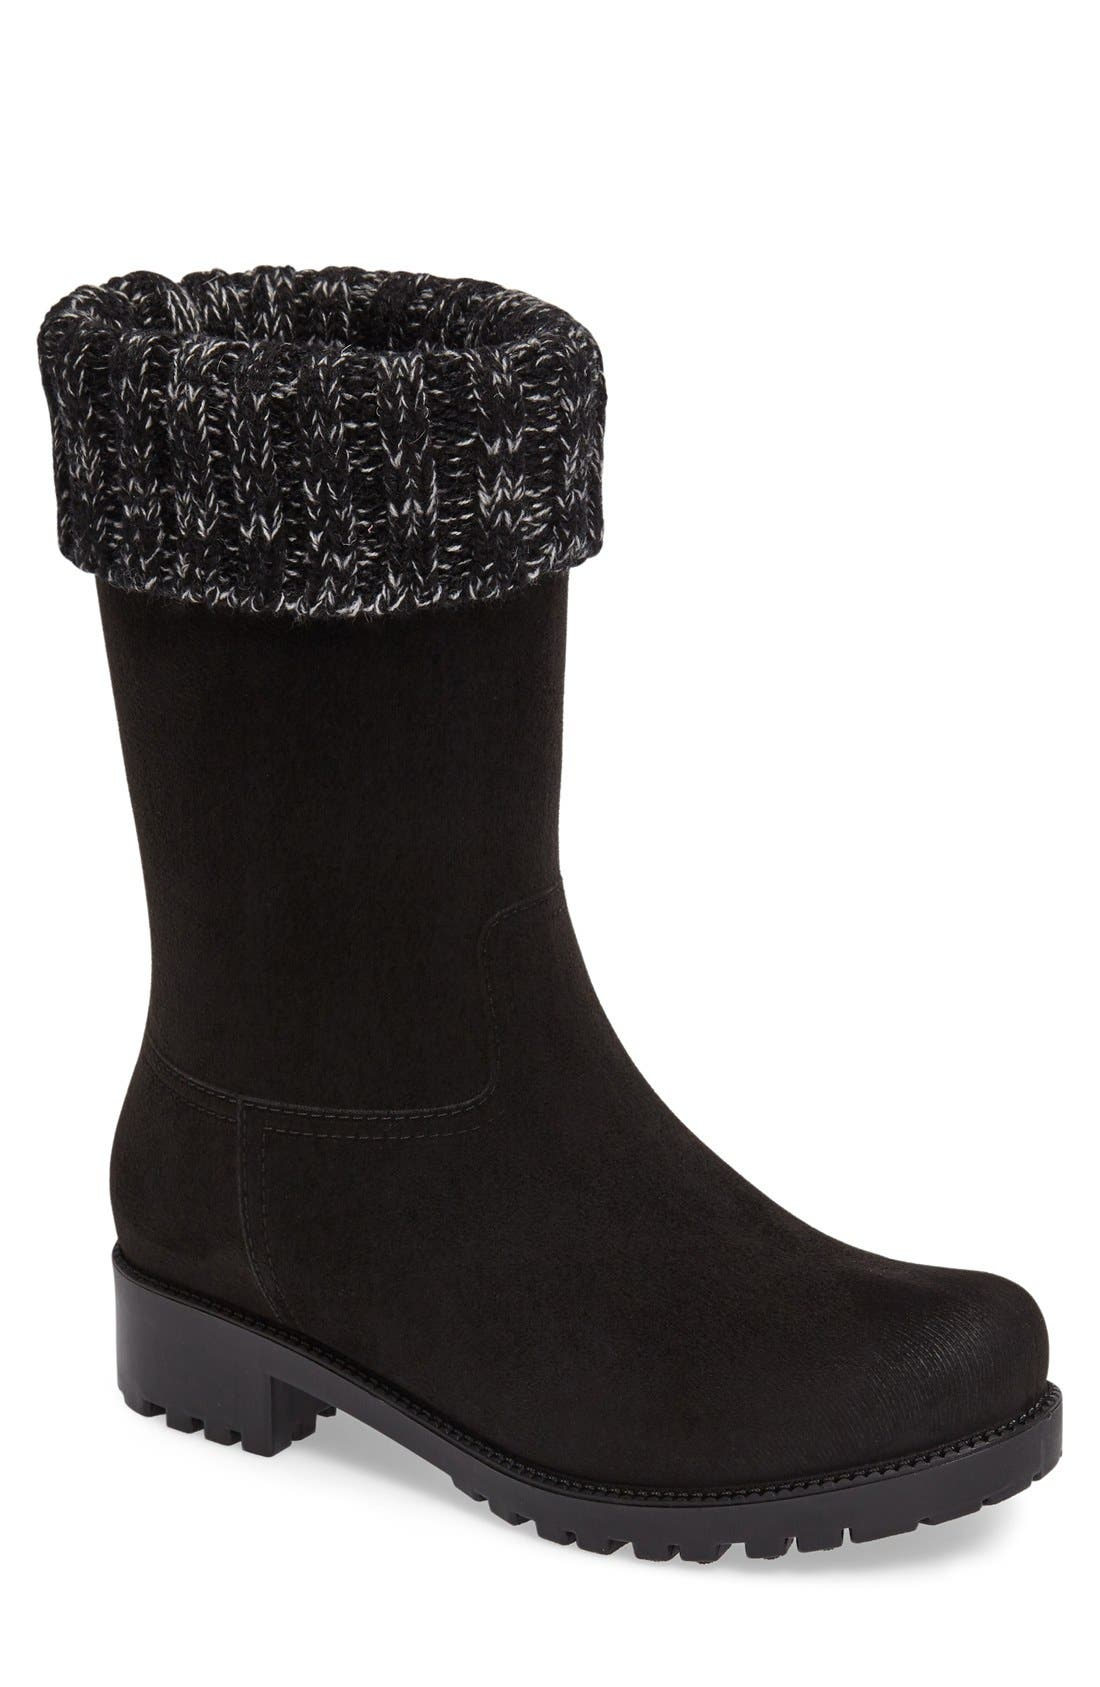 Alternate Image 1 Selected - däv Shelby Knit Cuff Waterproof Boot (Women's Shoes)